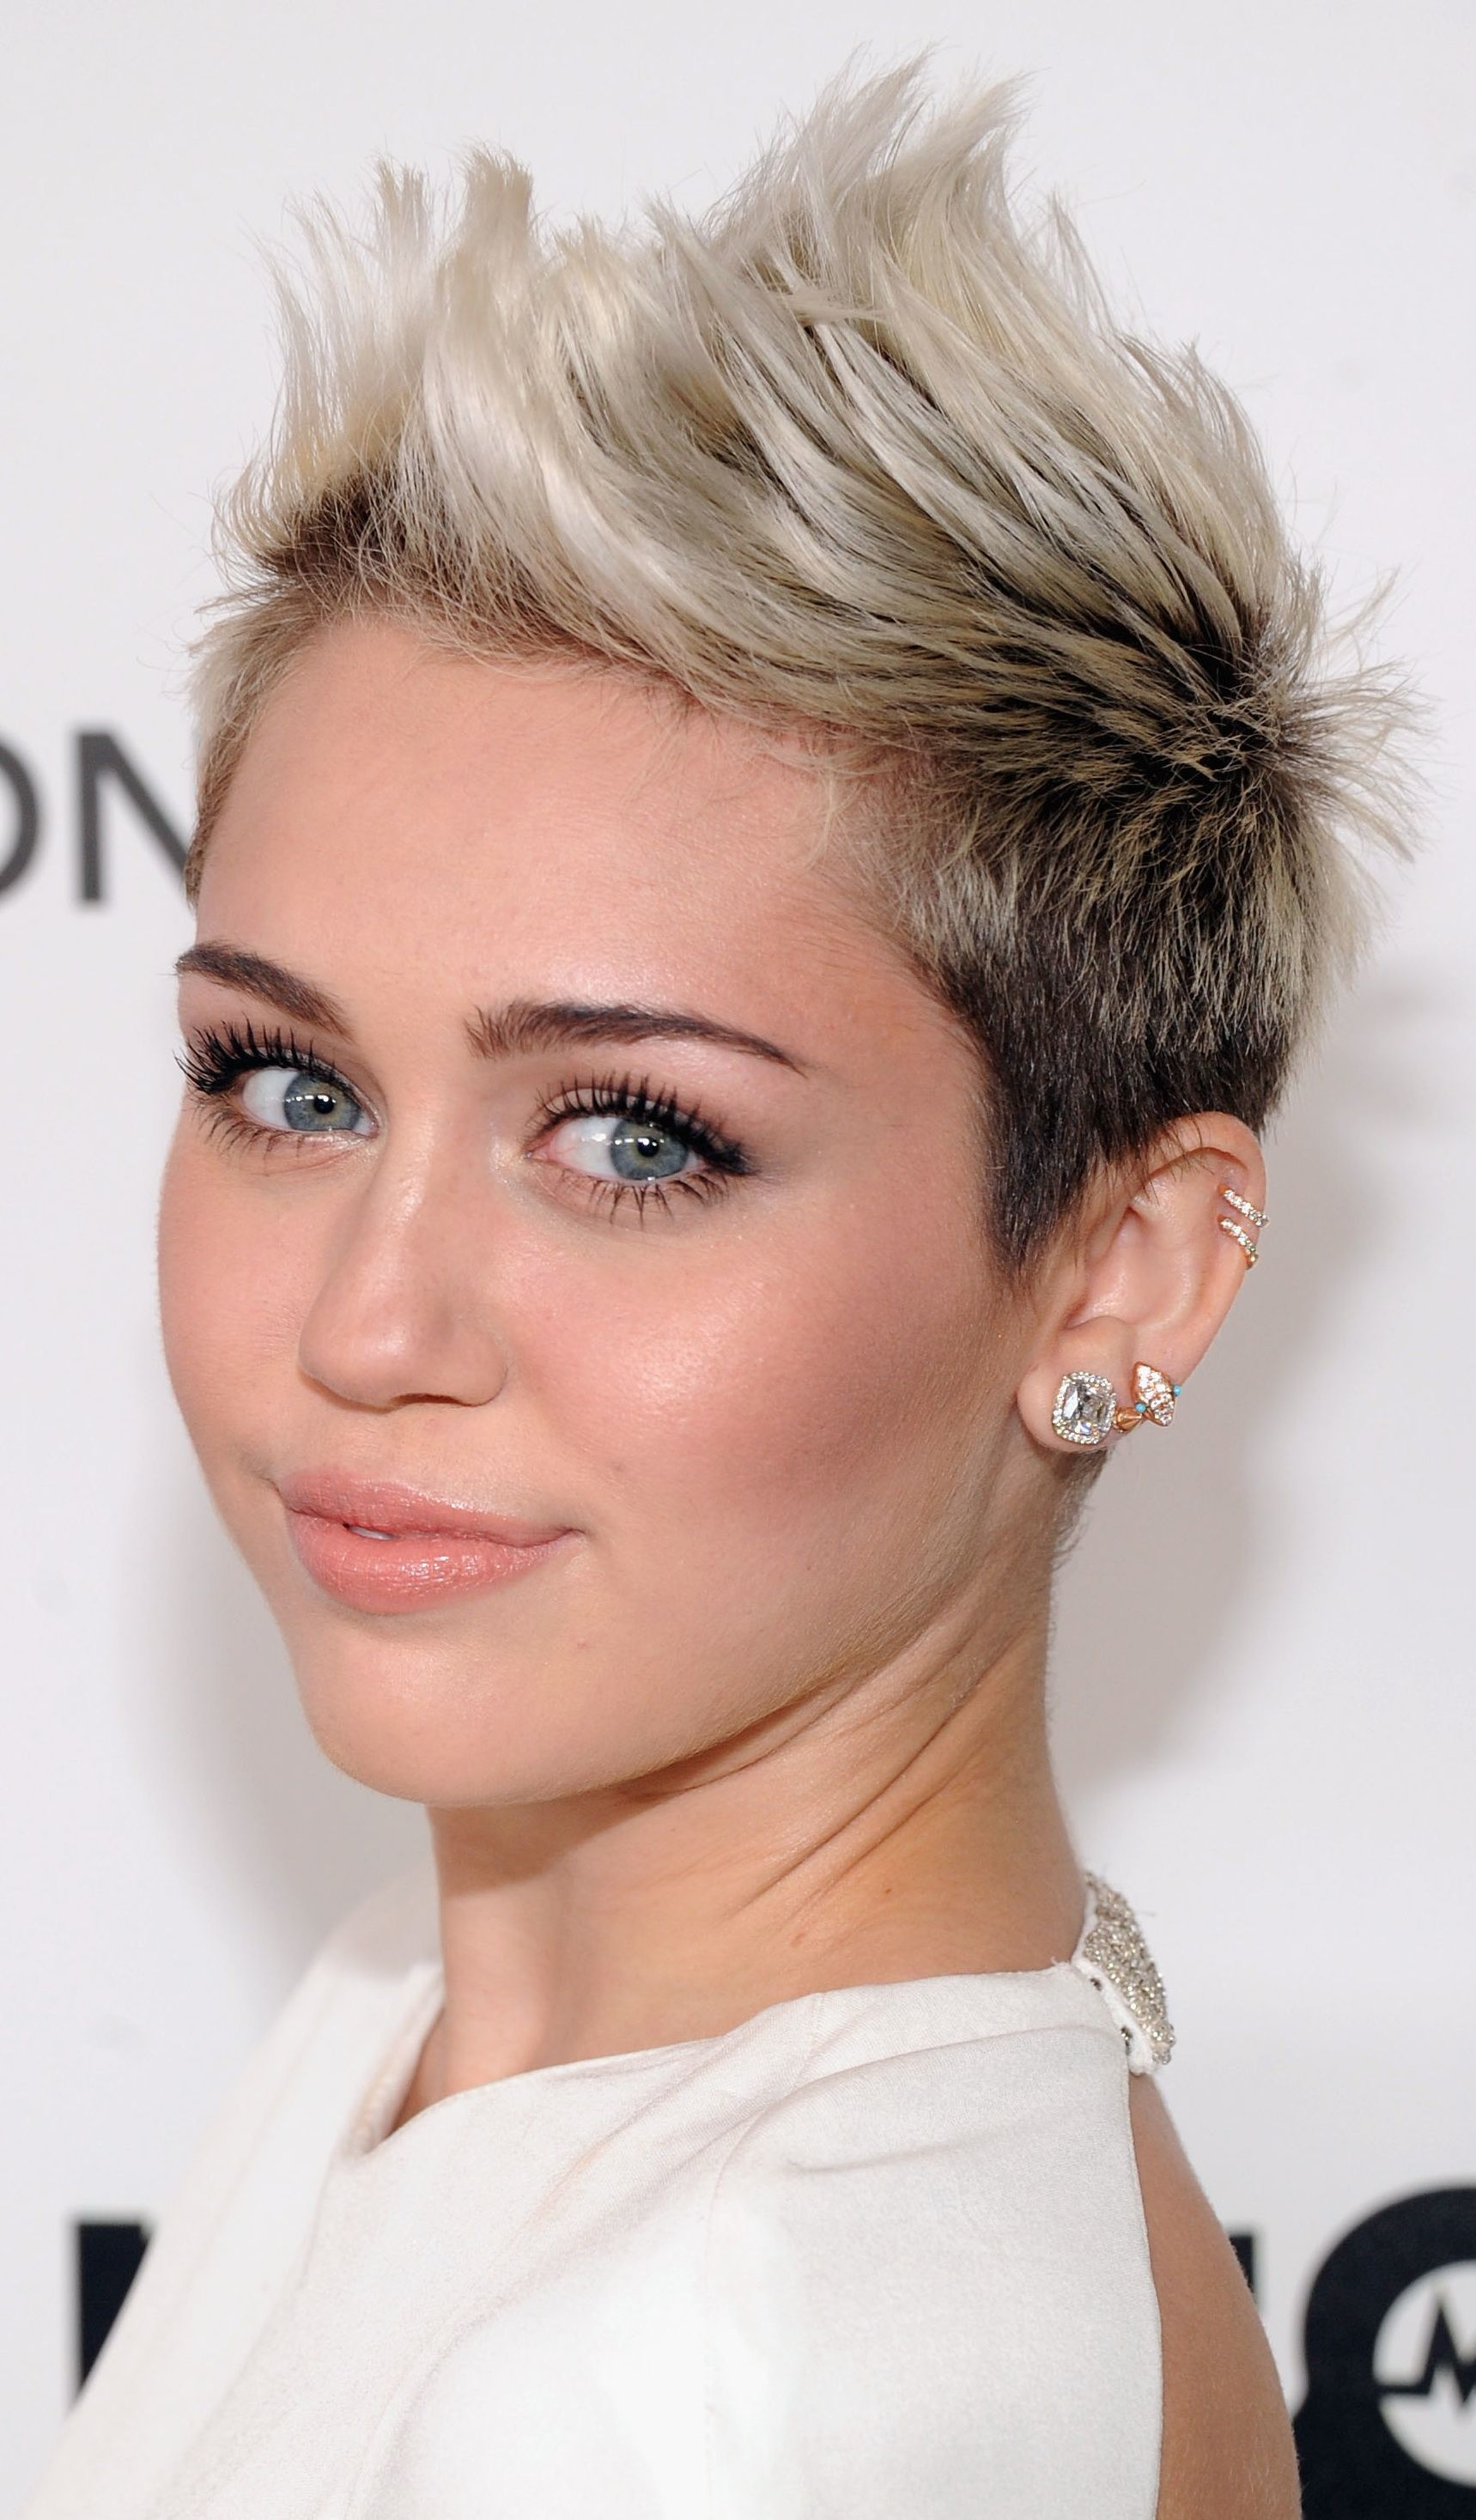 Best short hairstyles for round faces hairstyles pinterest